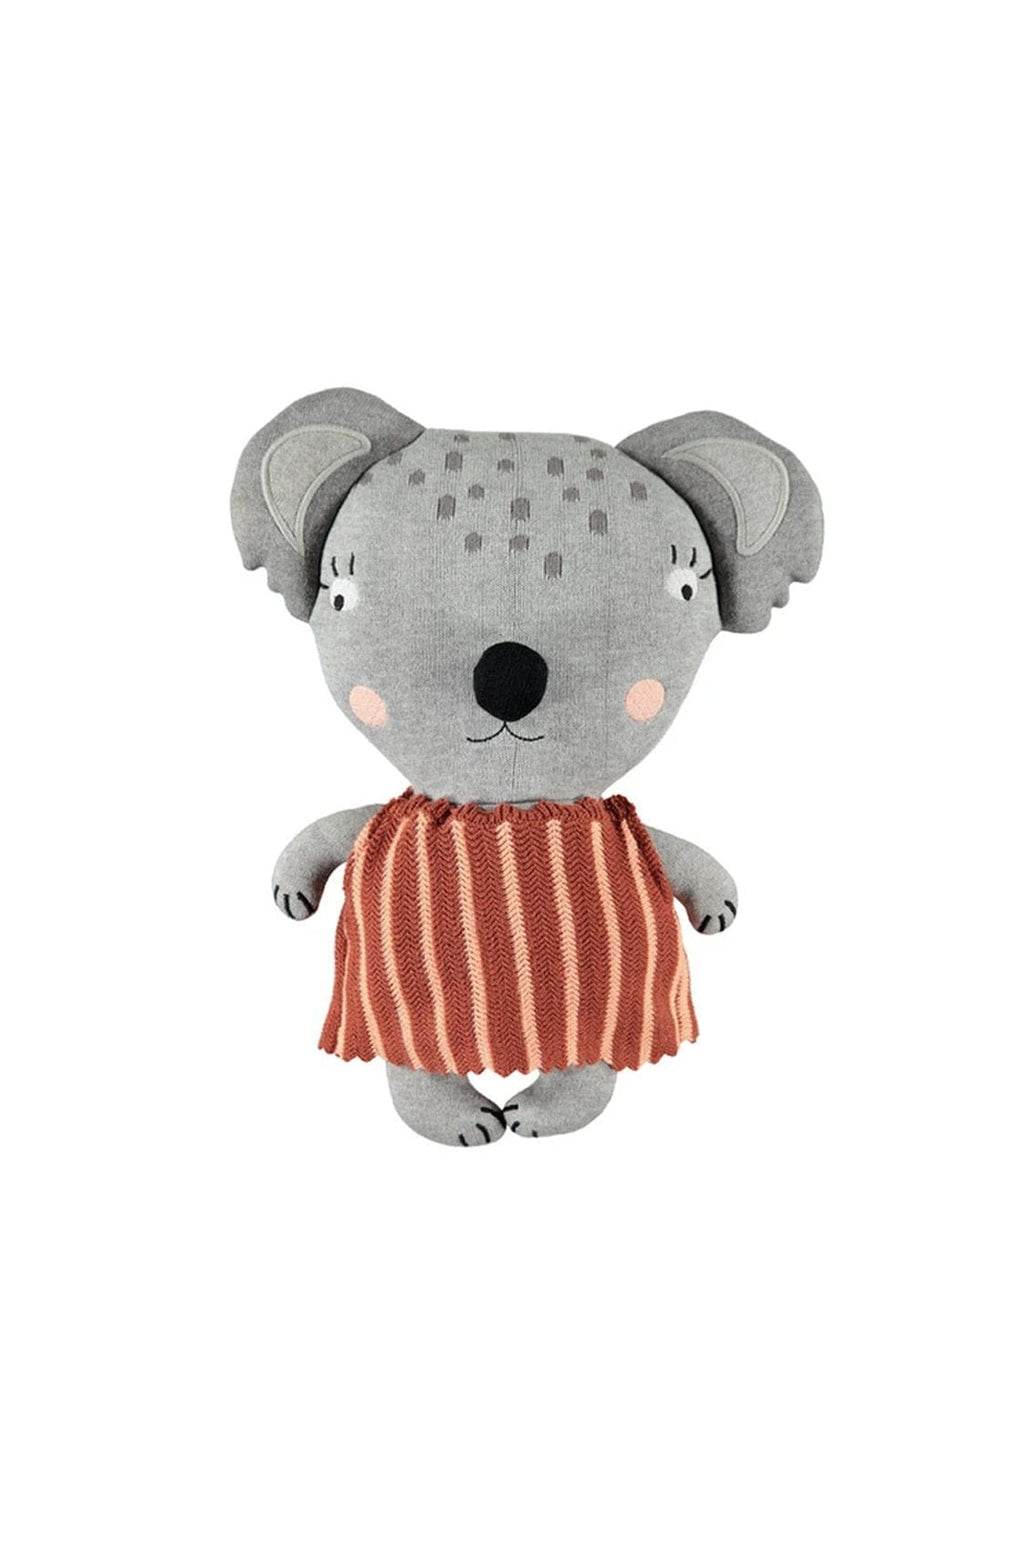 OYOY Mami Koala (PRE-ORDER MAY) - Hello Little Birdie